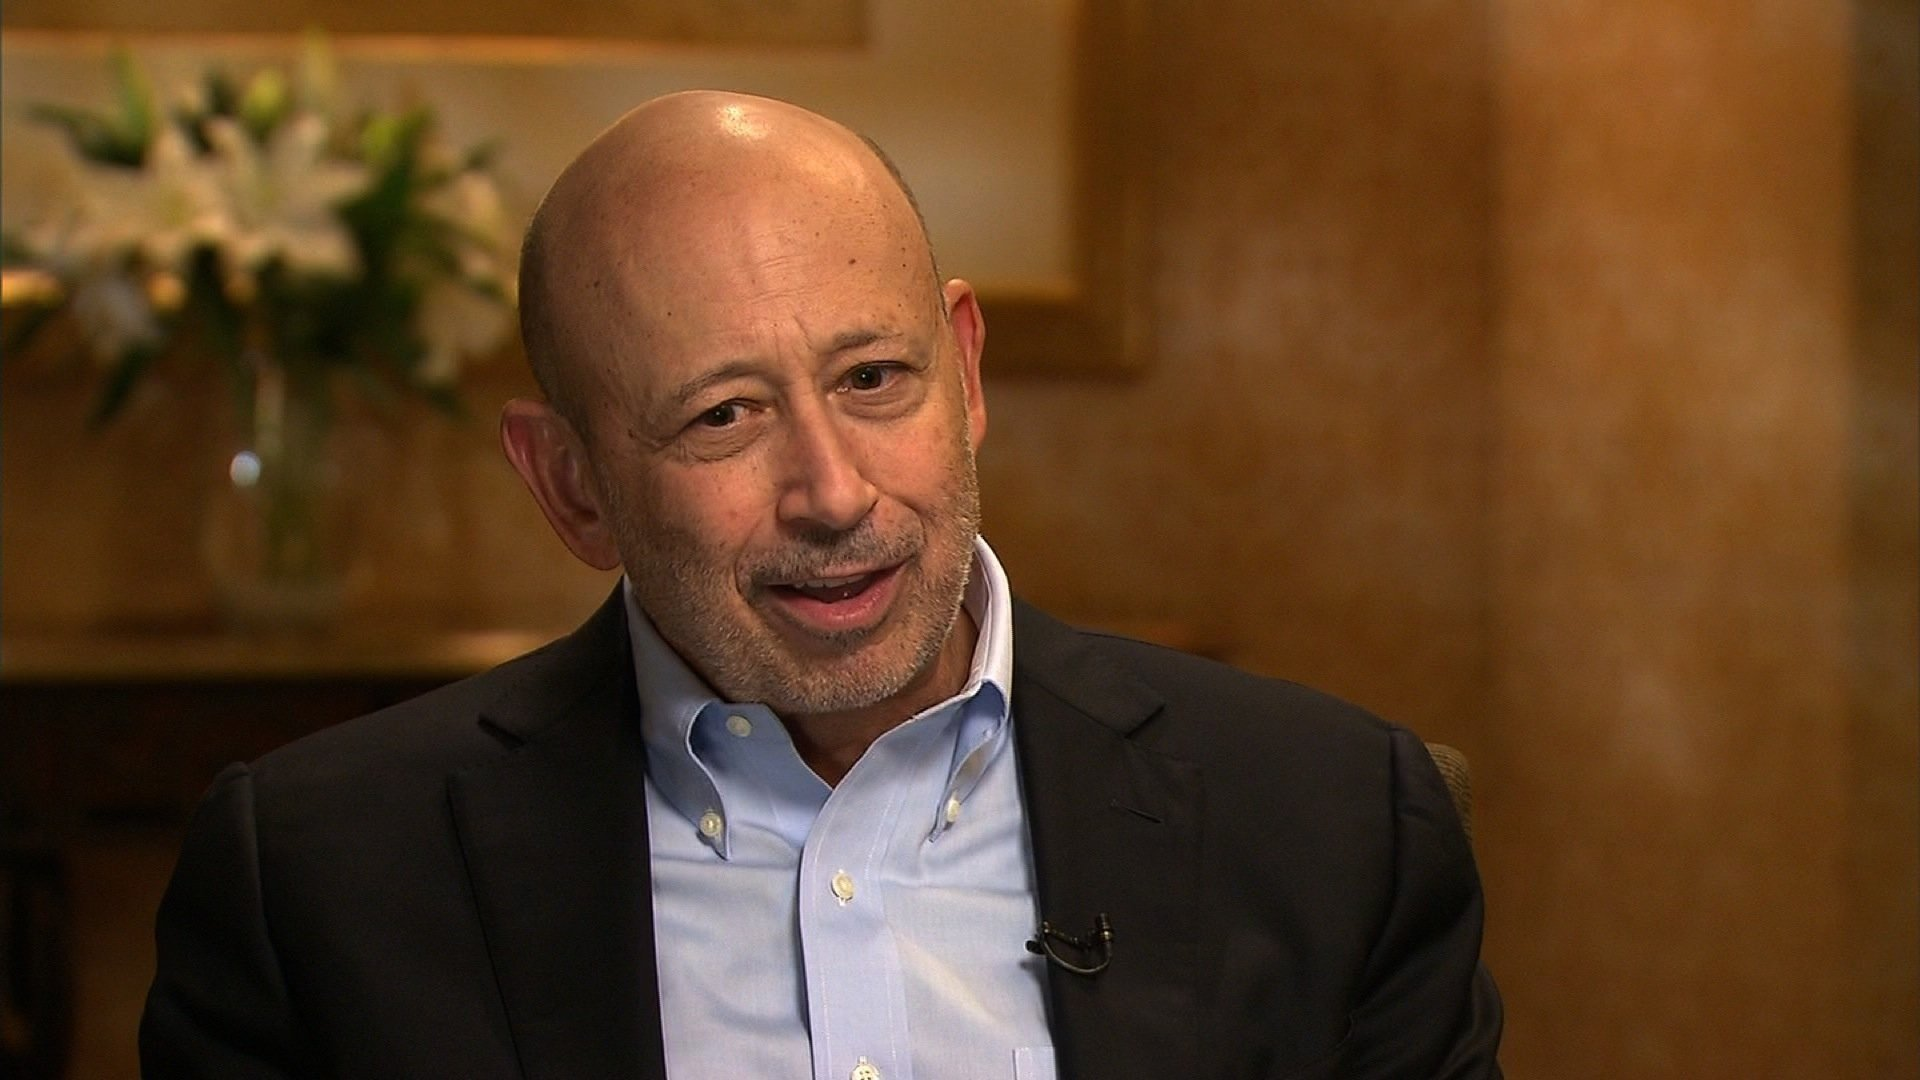 Goldman Sachs CEO Lloyd Blankfein to Retire by 2019